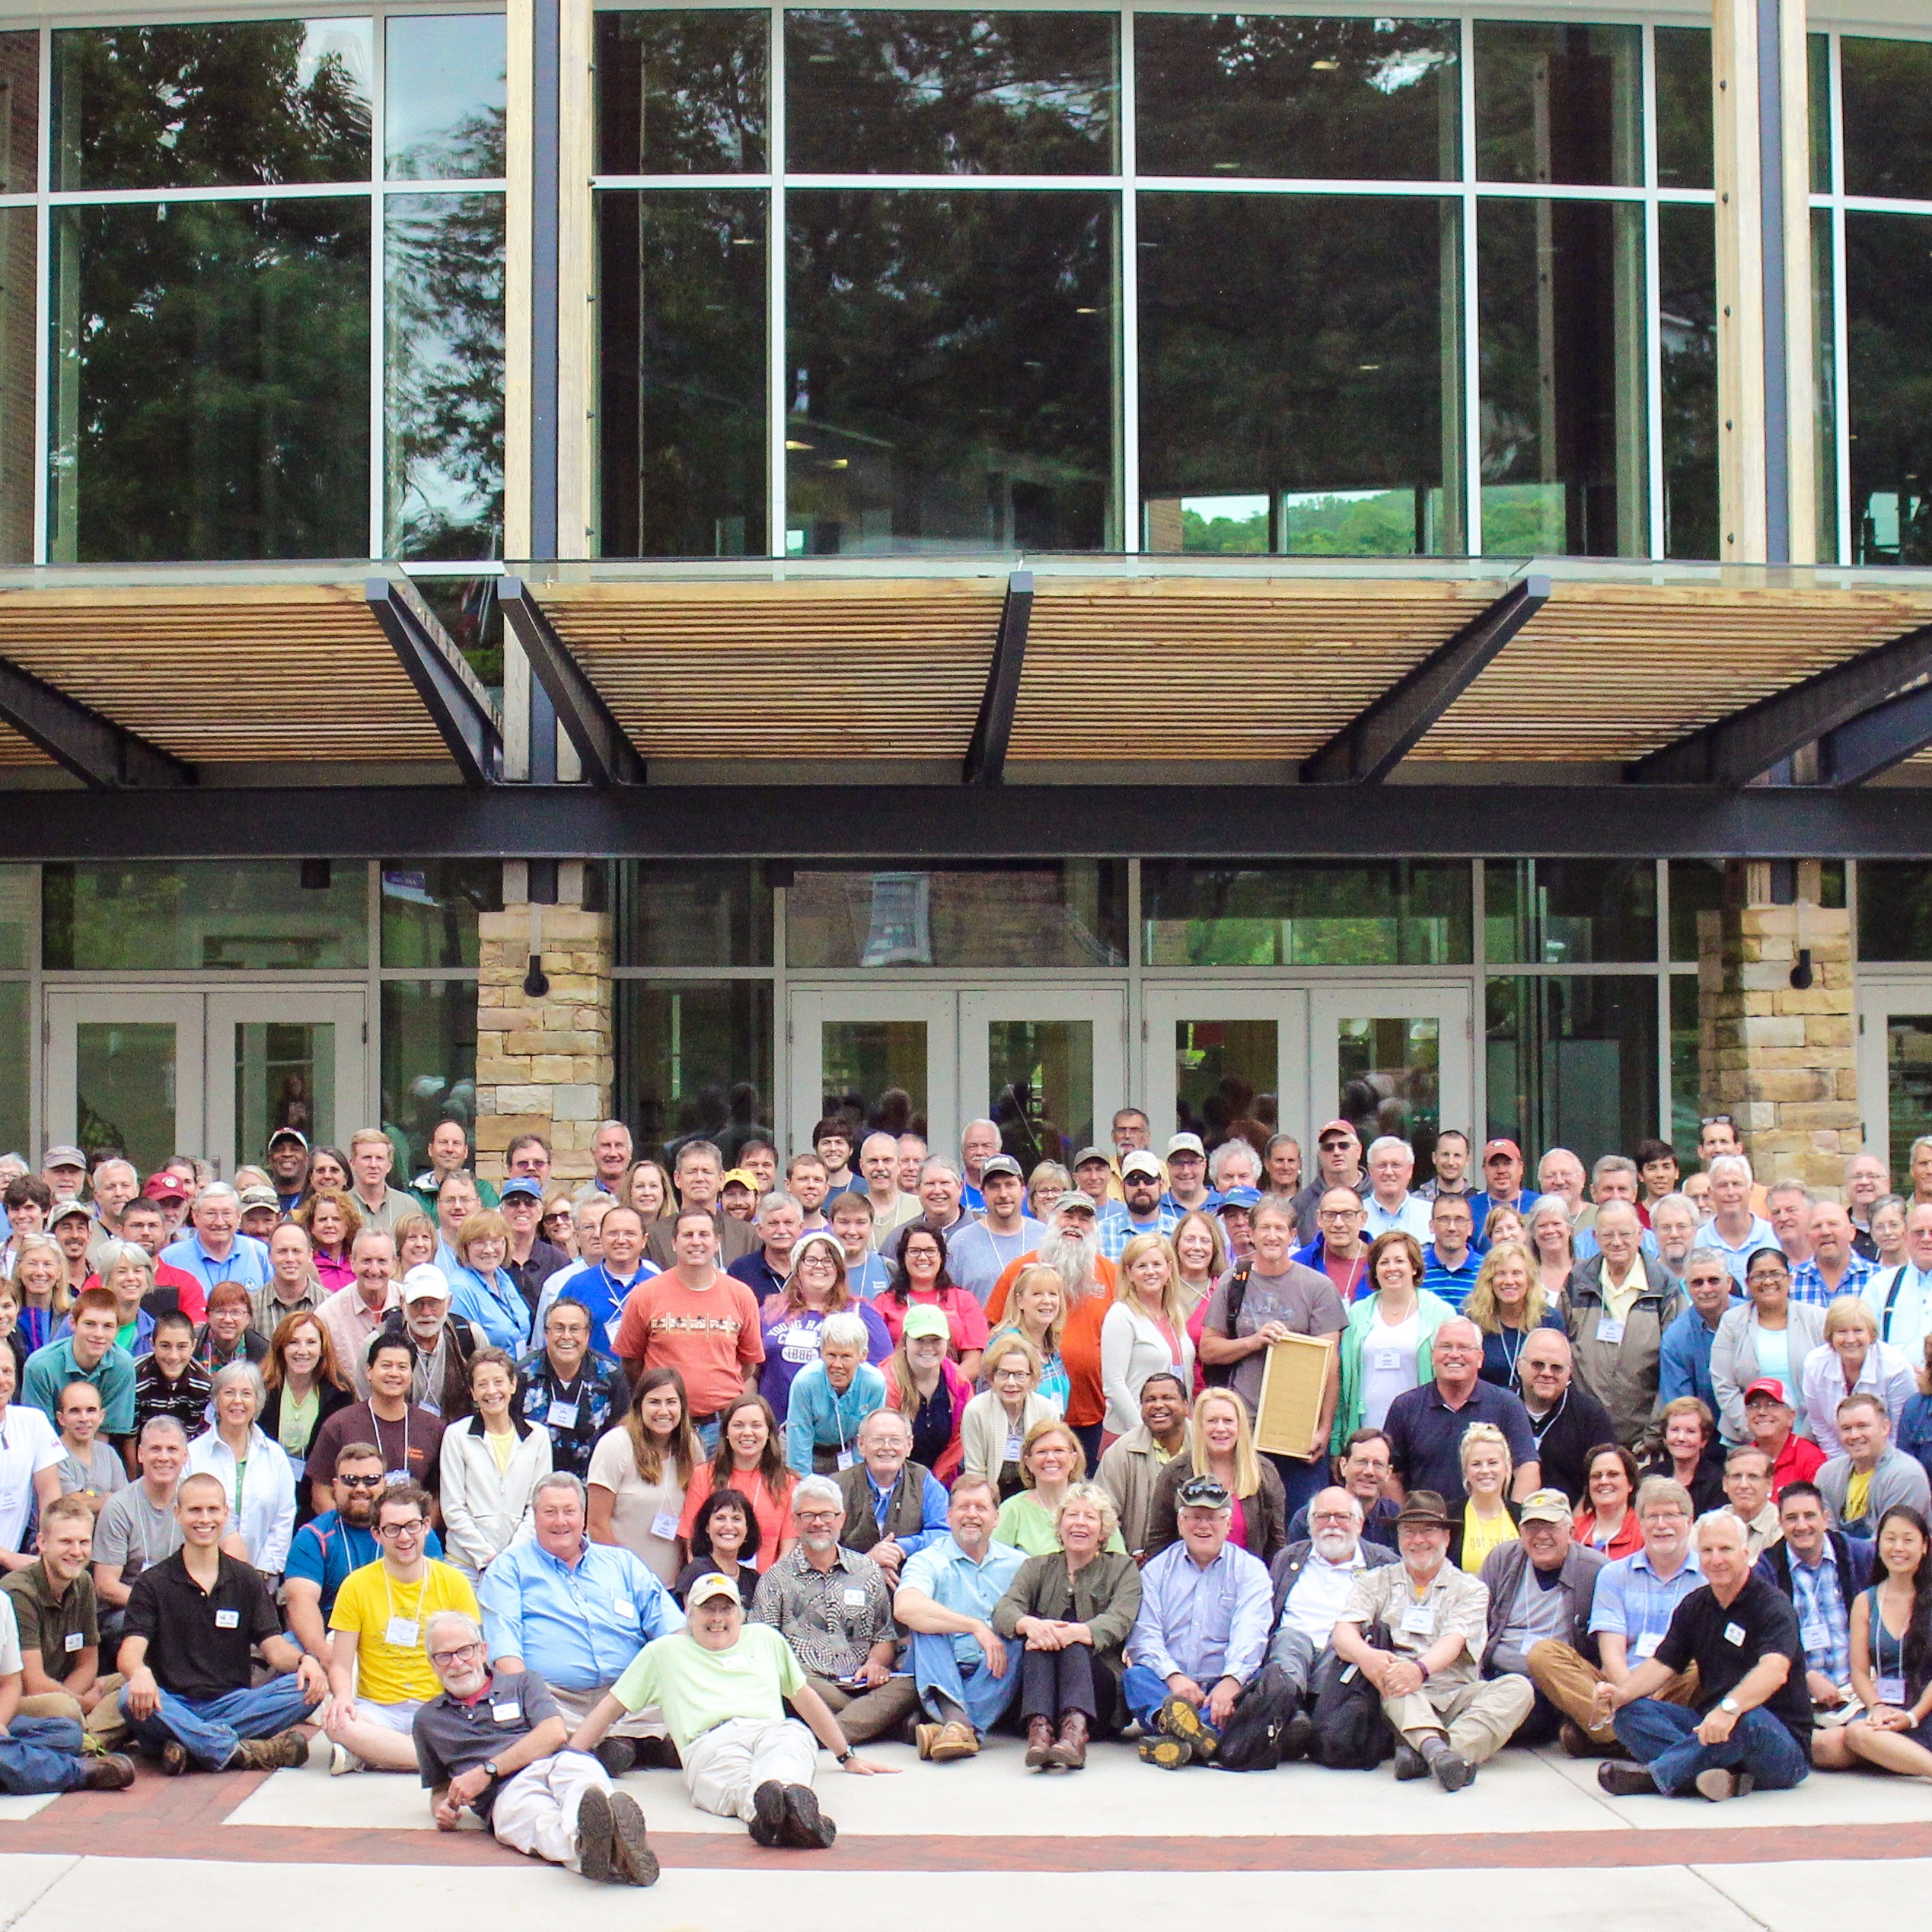 More than 250 beekeepers converged on Young Harris Georgia in May for the 25th annual Young Harris-UGA Beekeeping Institute